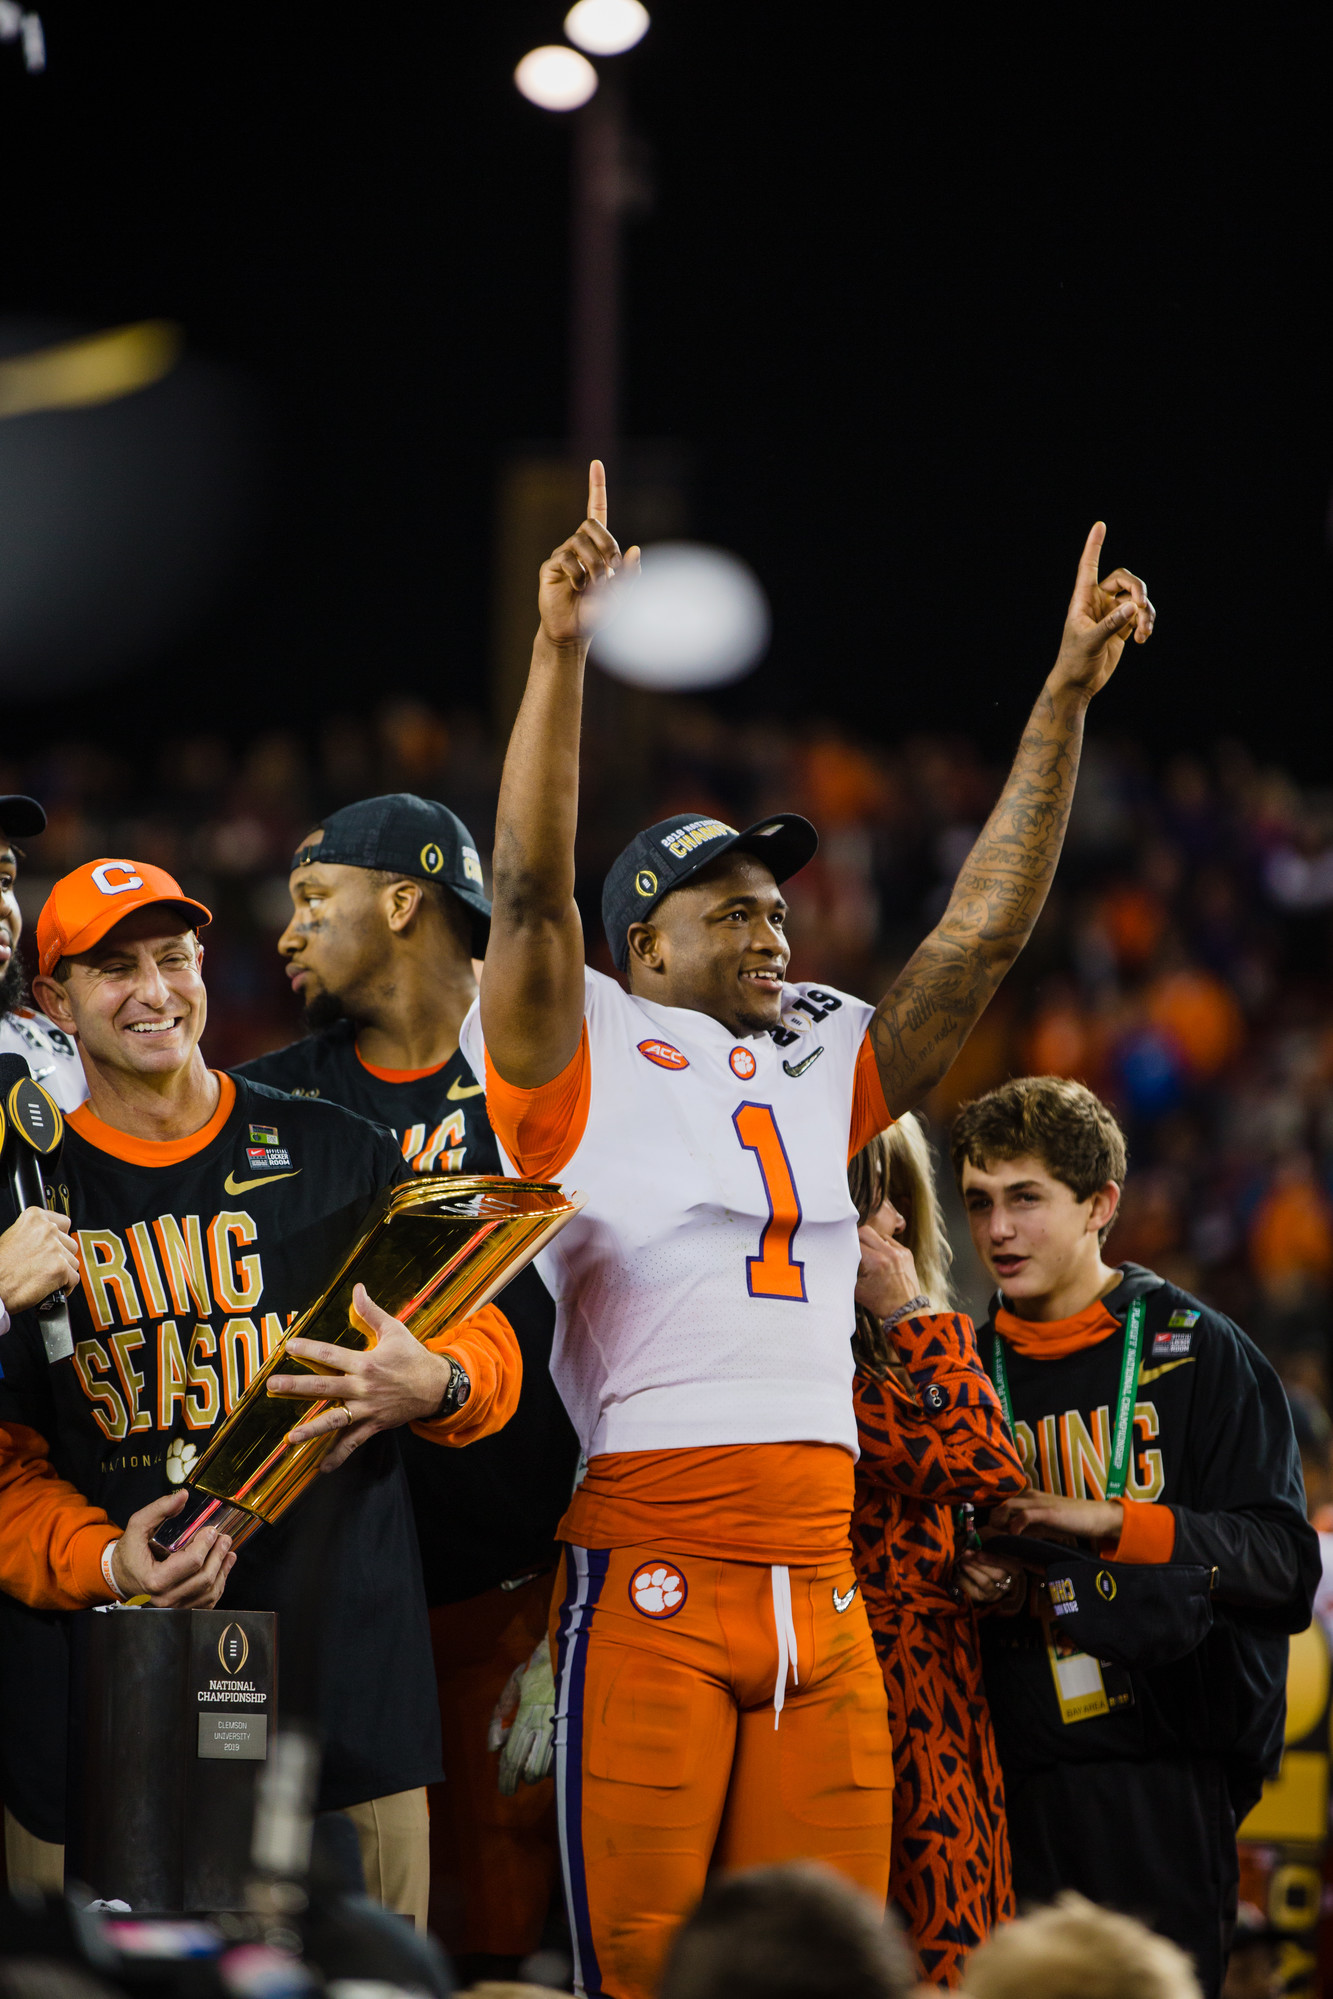 Clemson head coach Dabo Swinney holds the 2019 CFP National Championship trophy as cornerback Trayvon Mullen, the game's defensive MVP, celebrates at Levi's Stadium in Santa Clara, California, on Monday, Jan. 7 after the Tigers routed Alabama 44-16.